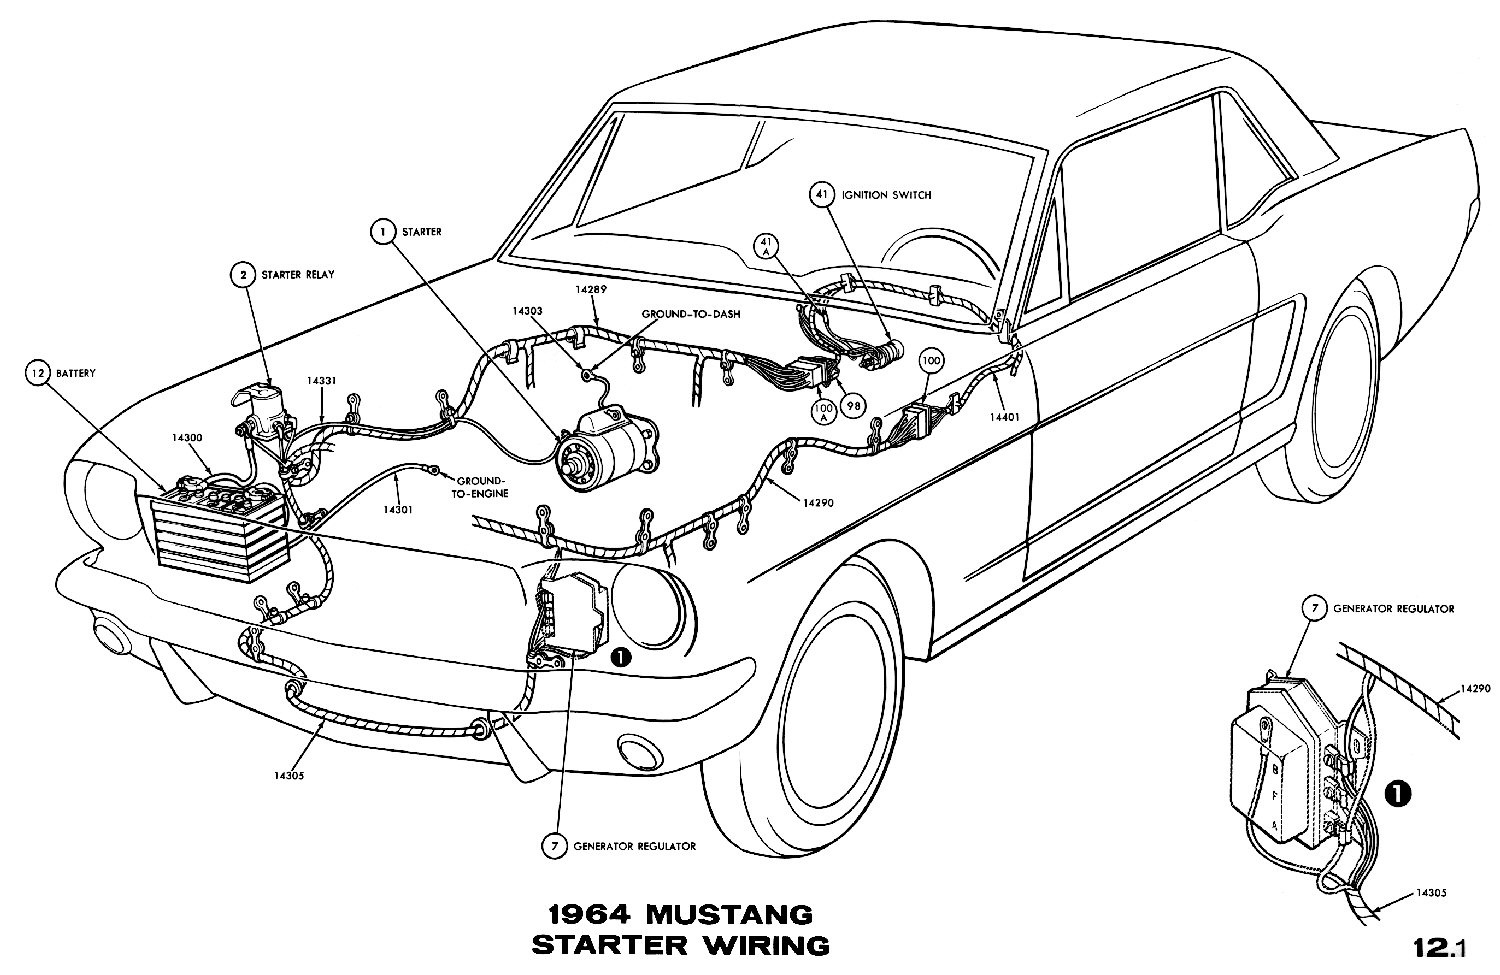 65 Chevy Starter Solenoid Wiring Diagram | Wiring Liry on cat starter relay wiring diagram, toyota starter relay wiring diagram, jeep starter relay wiring diagram, dodge starter relay wiring diagram, mopar starter relay wiring diagram, caterpillar starter relay wiring diagram,